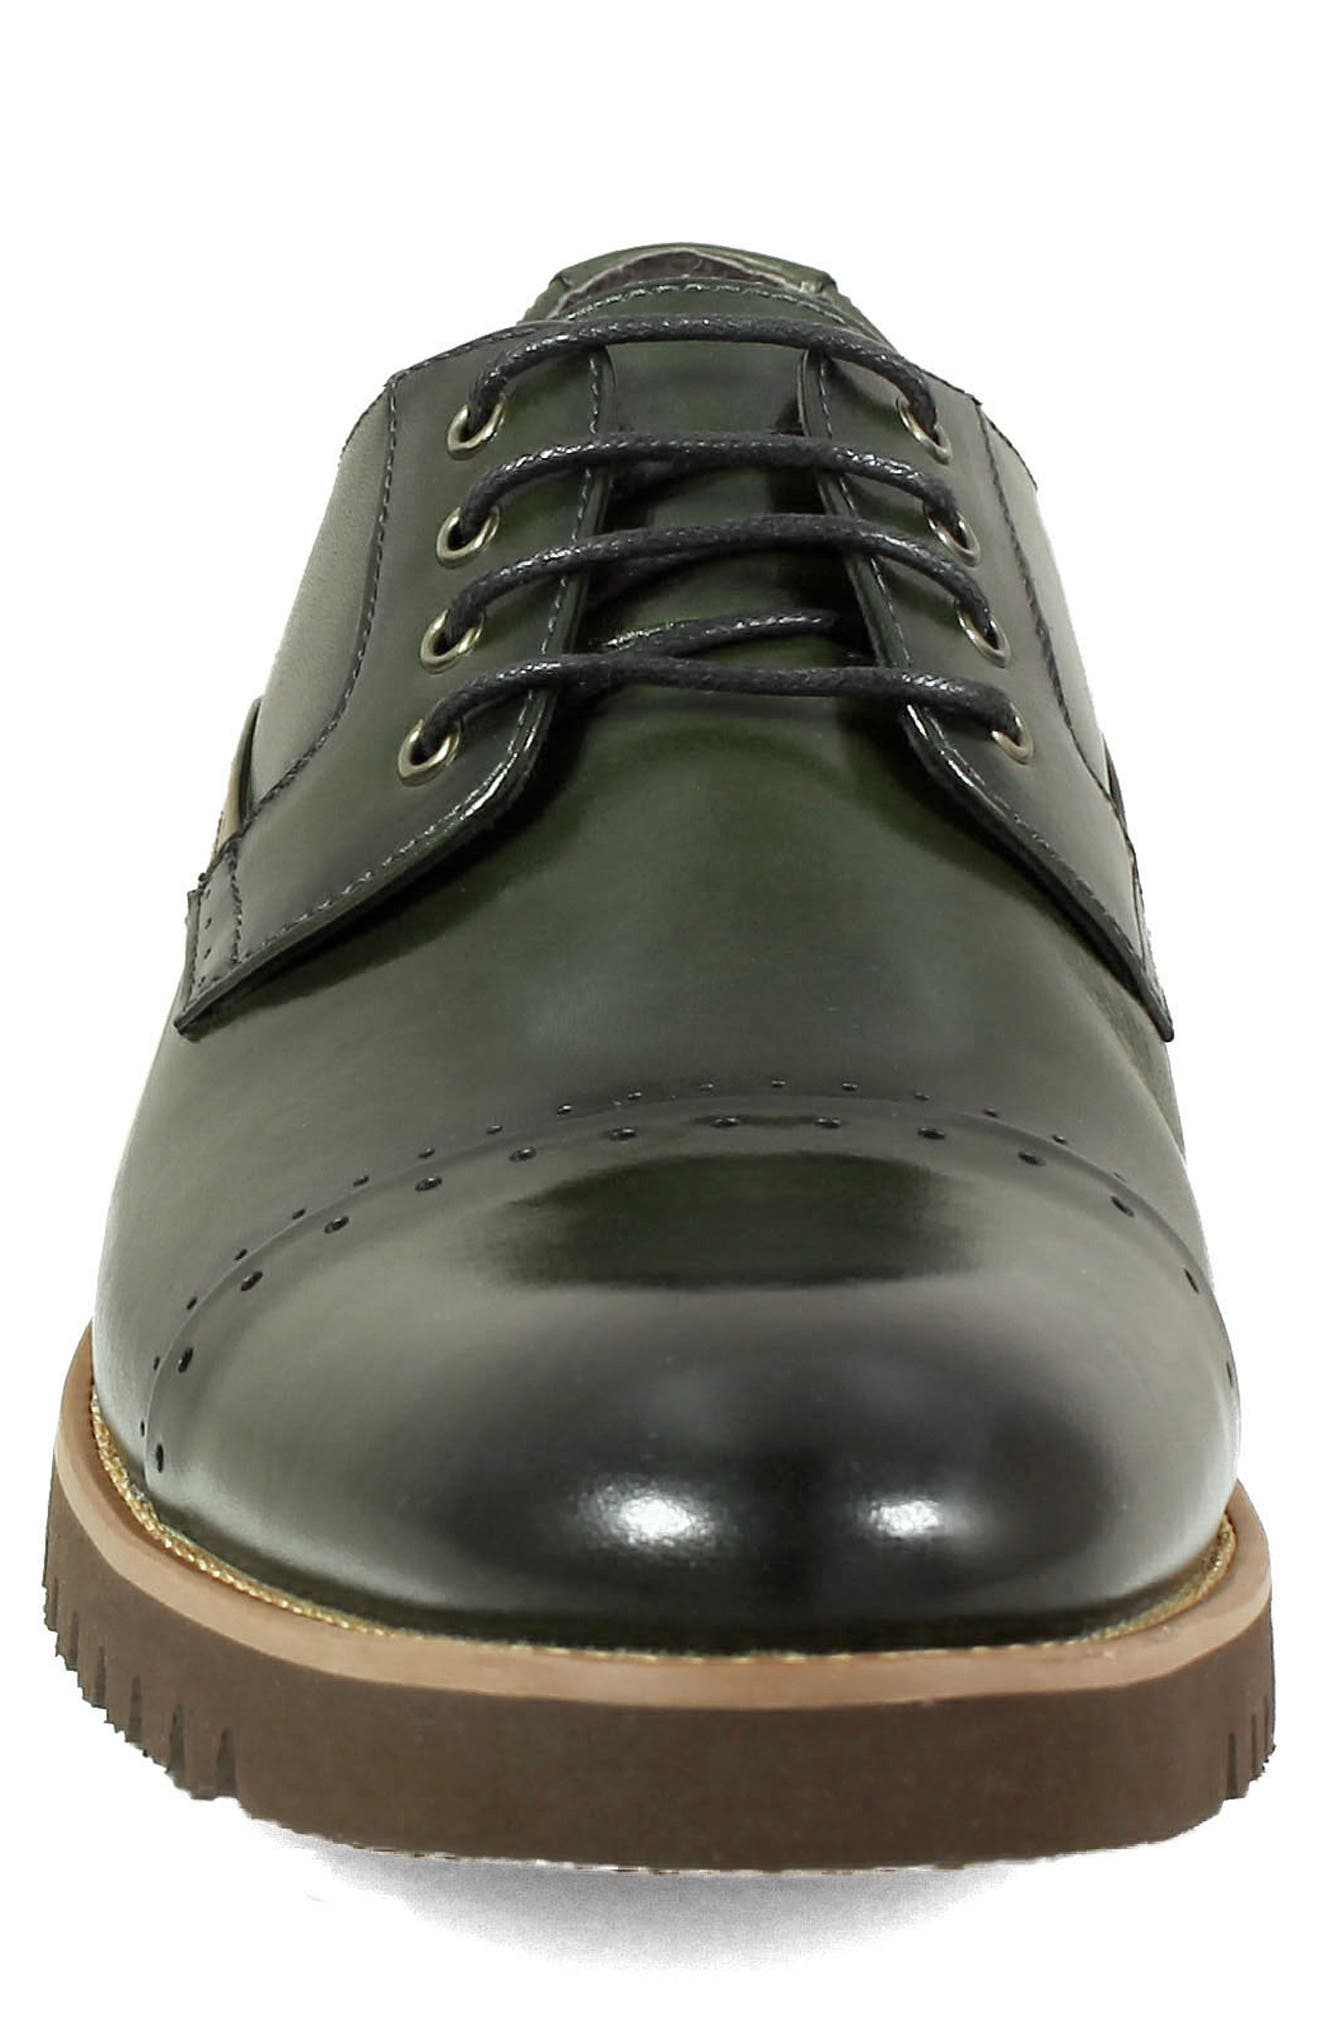 Barcliff Cap Toe Derby,                             Alternate thumbnail 4, color,                             CARGO GREEN LEATHER